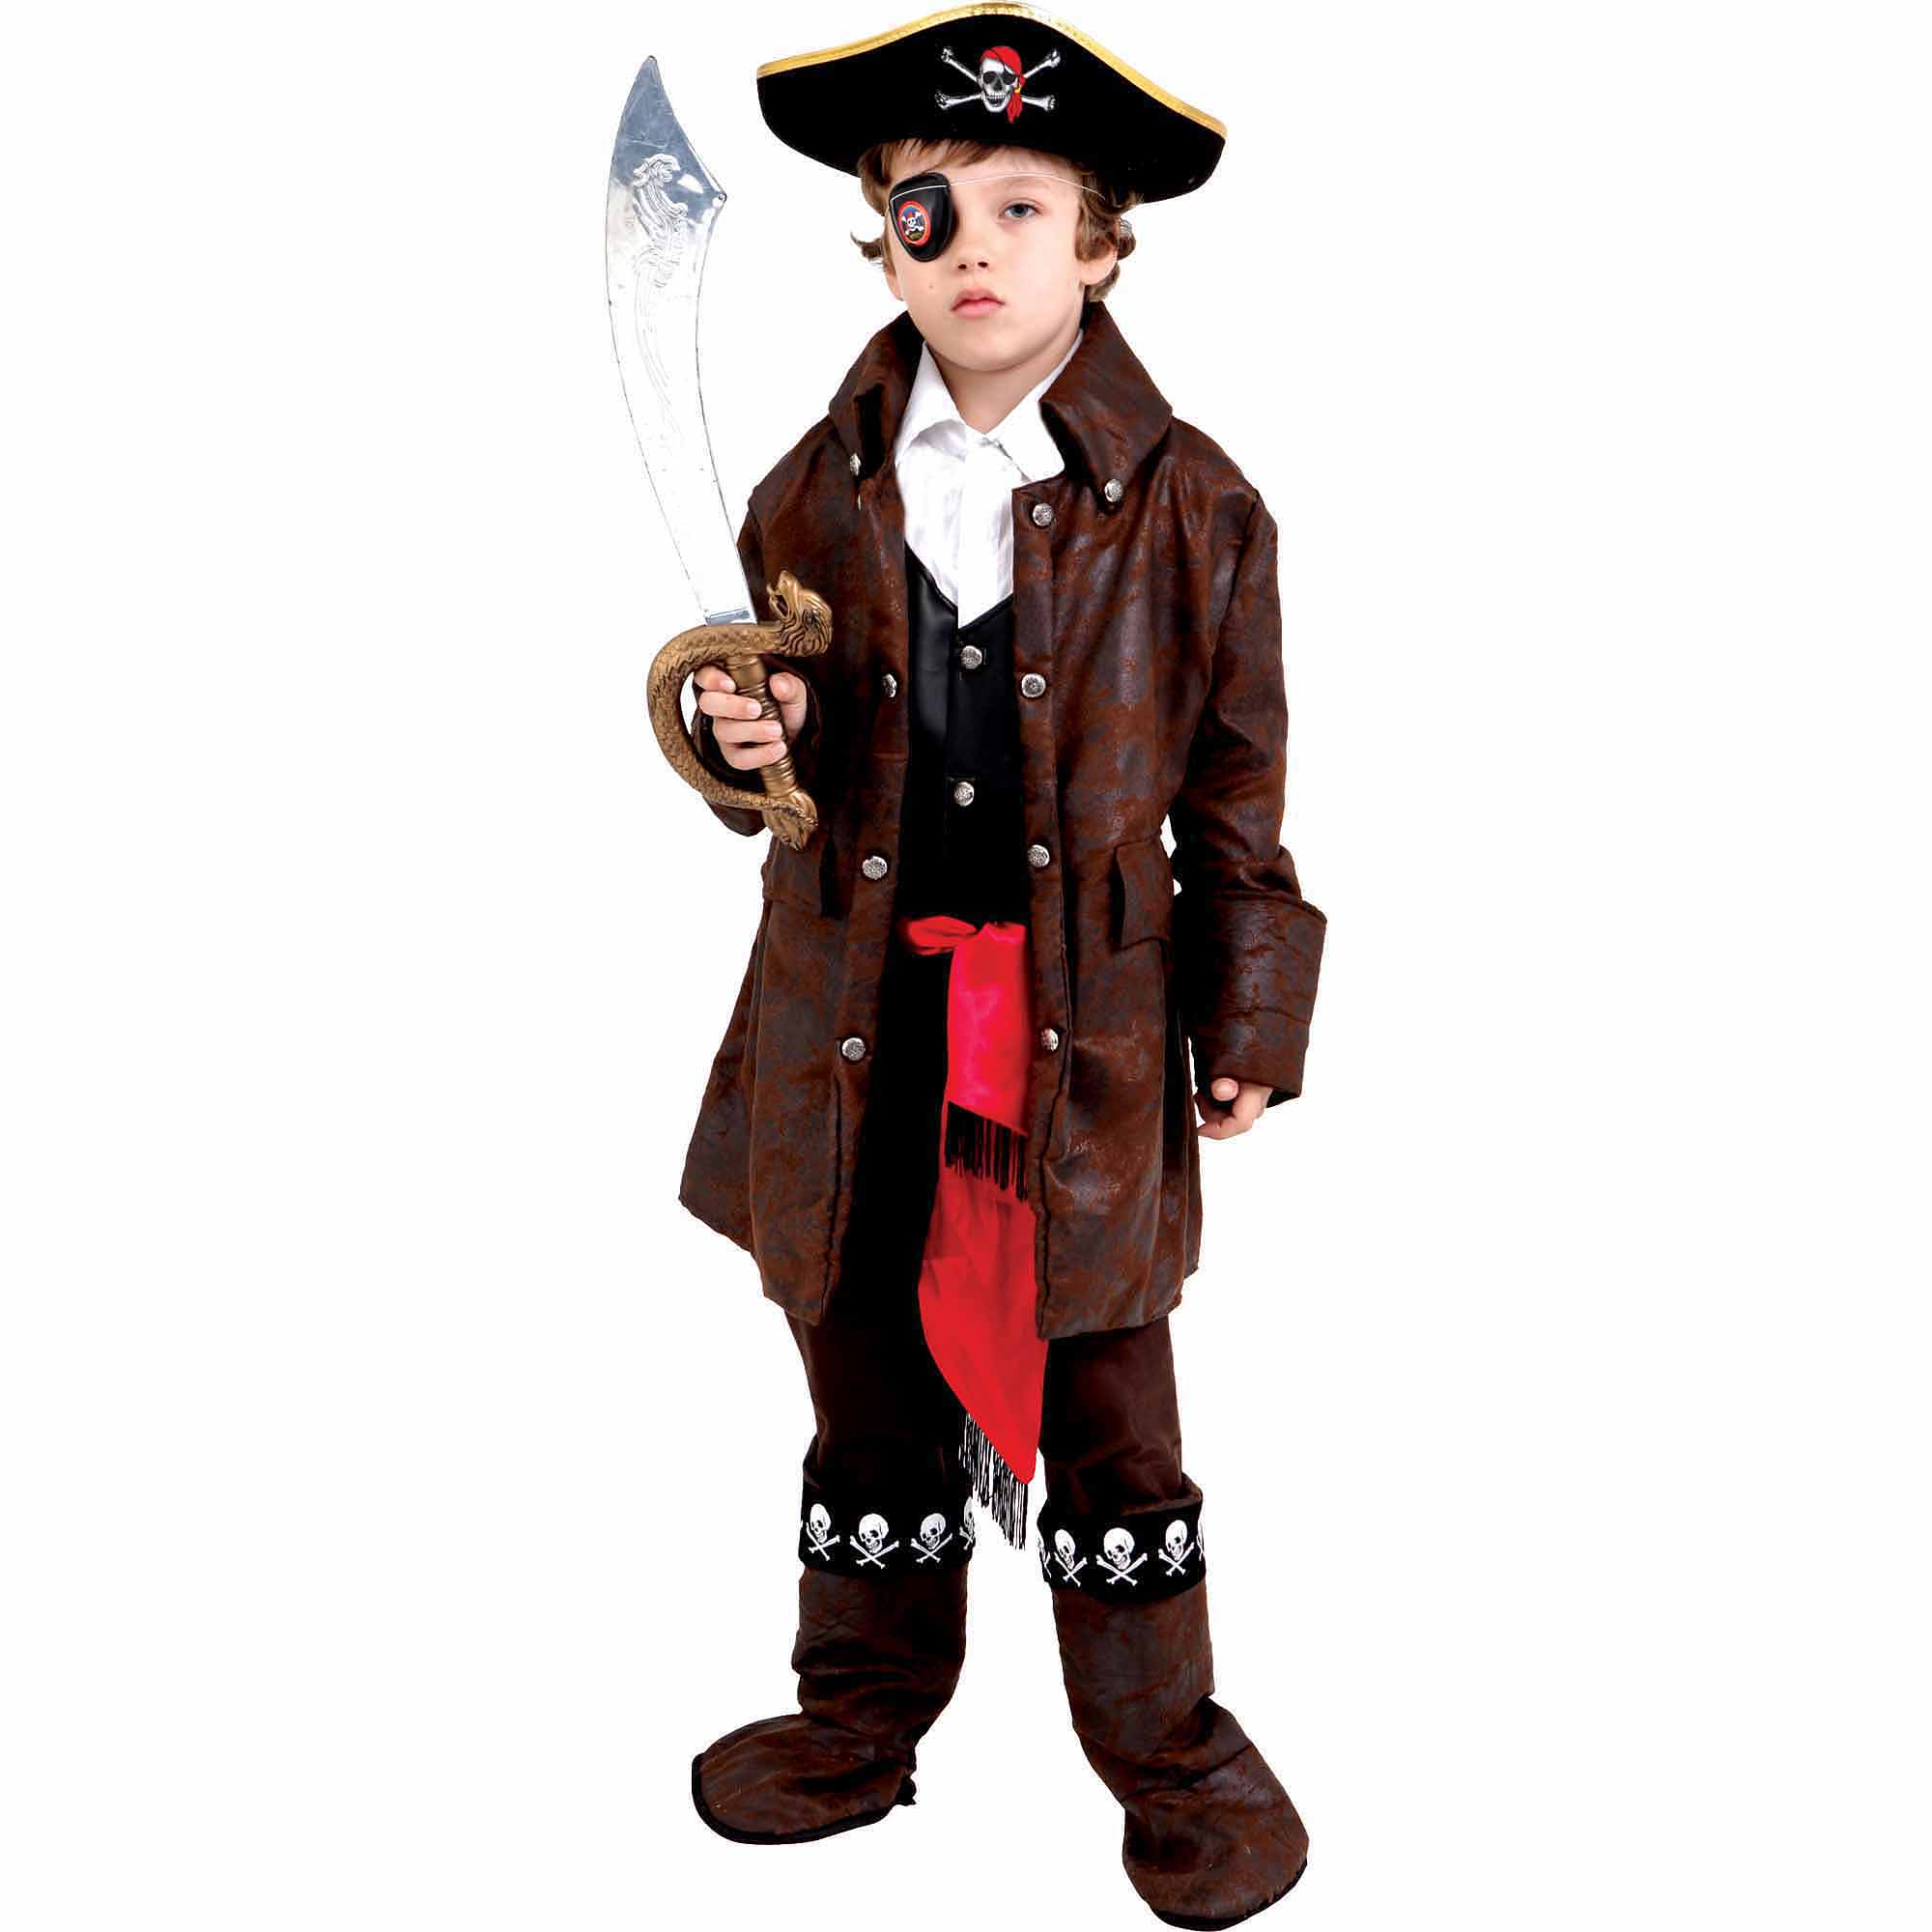 Caribbean Boy Pirate Child Halloween Costume